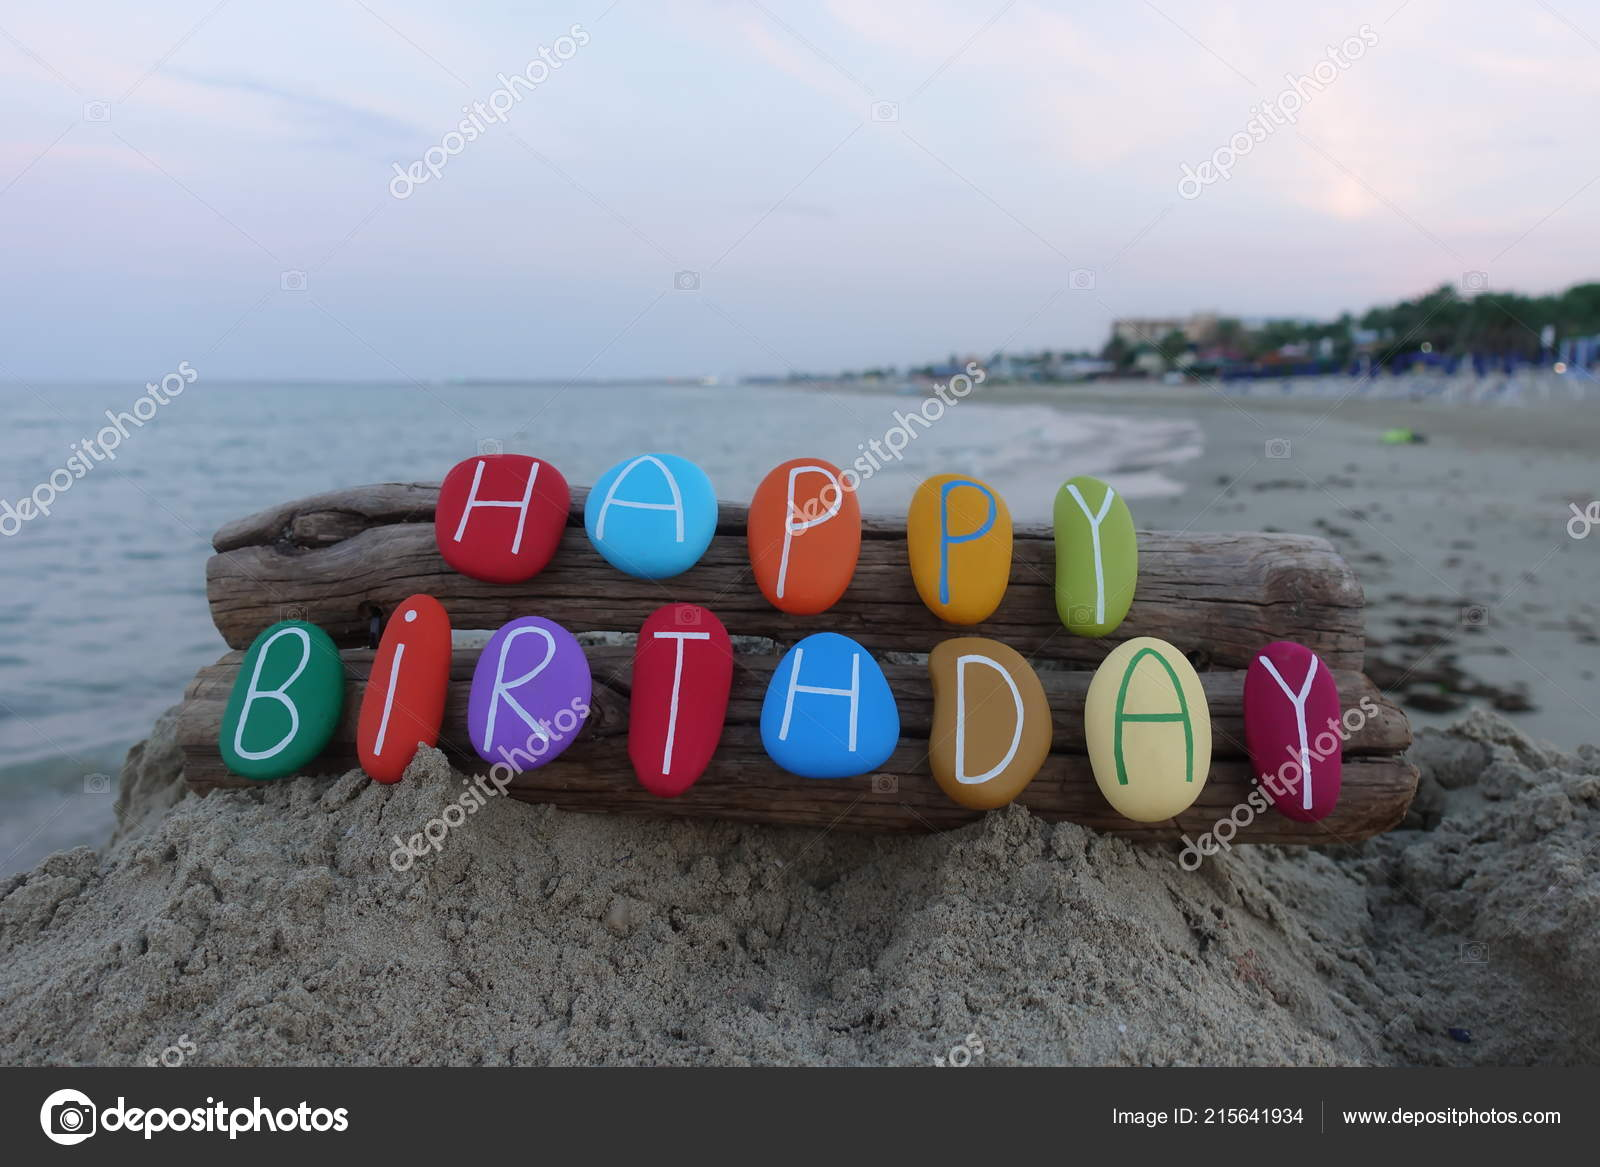 Happy Birthday Message Multi Colored Stones Two Pieces Wood Sea Stock Photo C Ciaobucarest 215641934